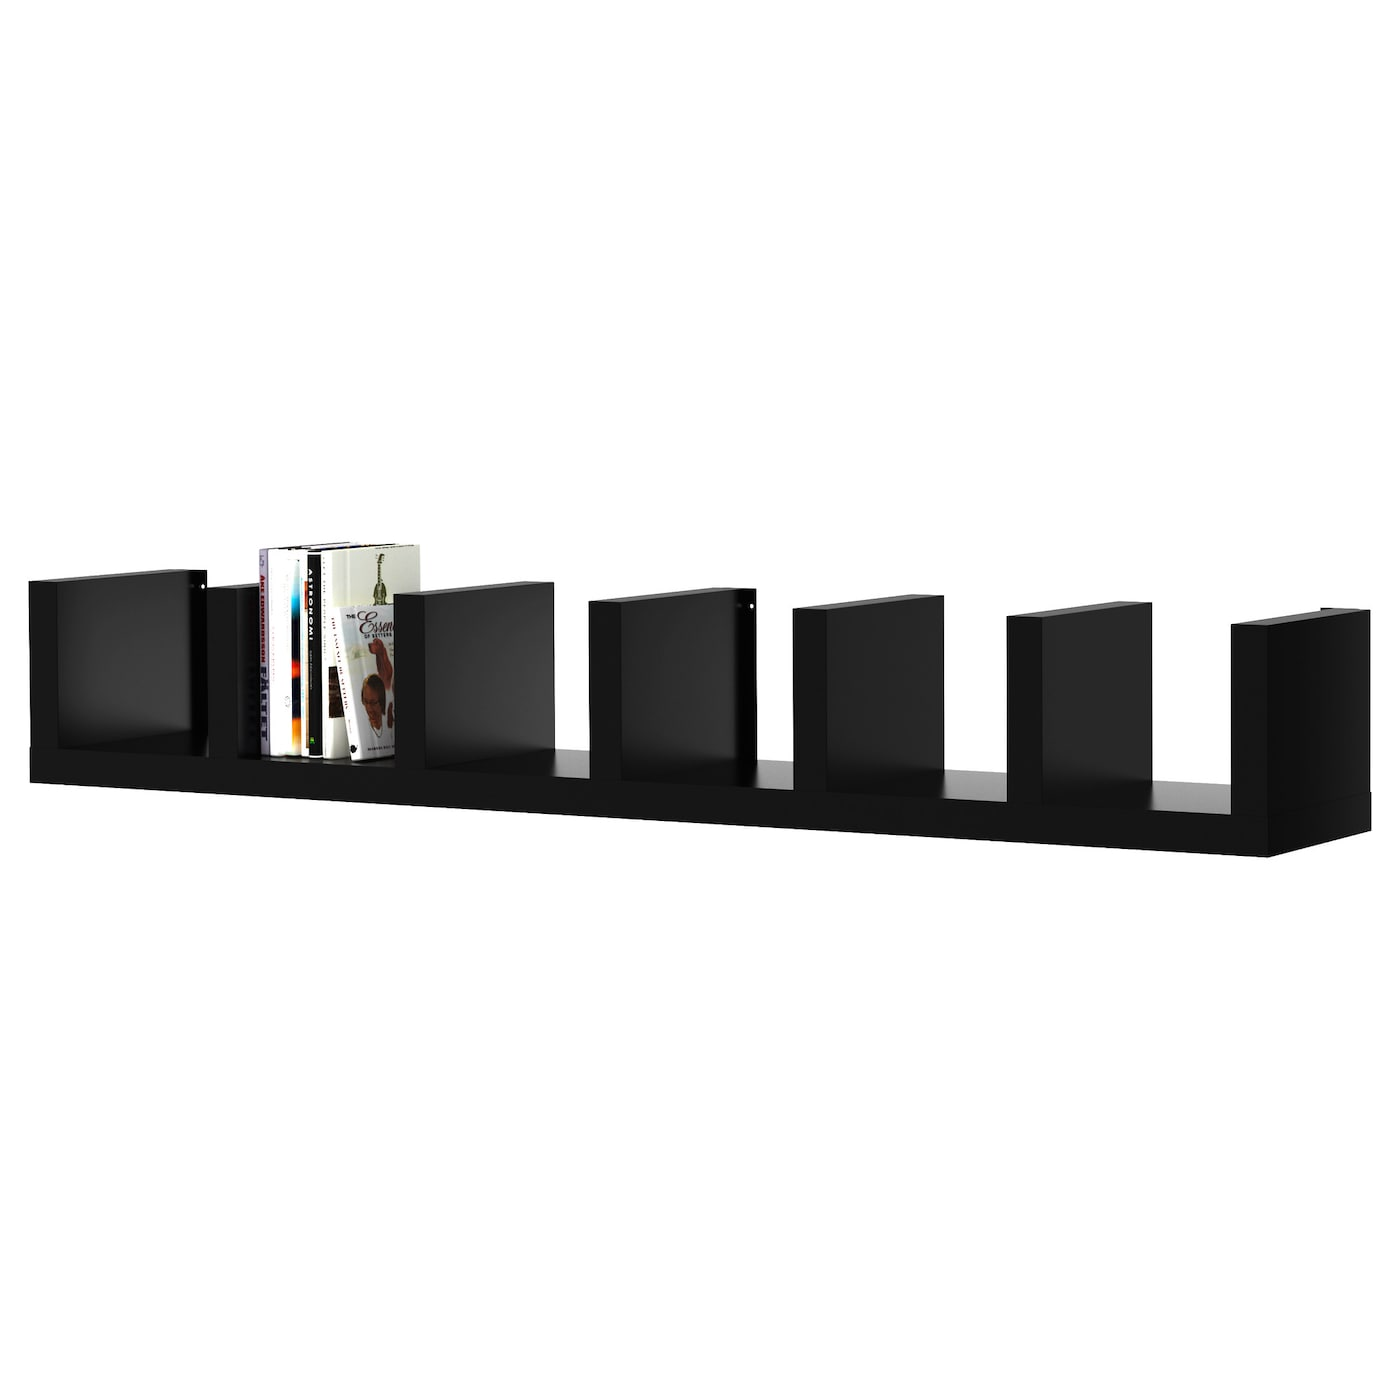 lack wall shelf unit black 30 x 190 cm ikea. Black Bedroom Furniture Sets. Home Design Ideas